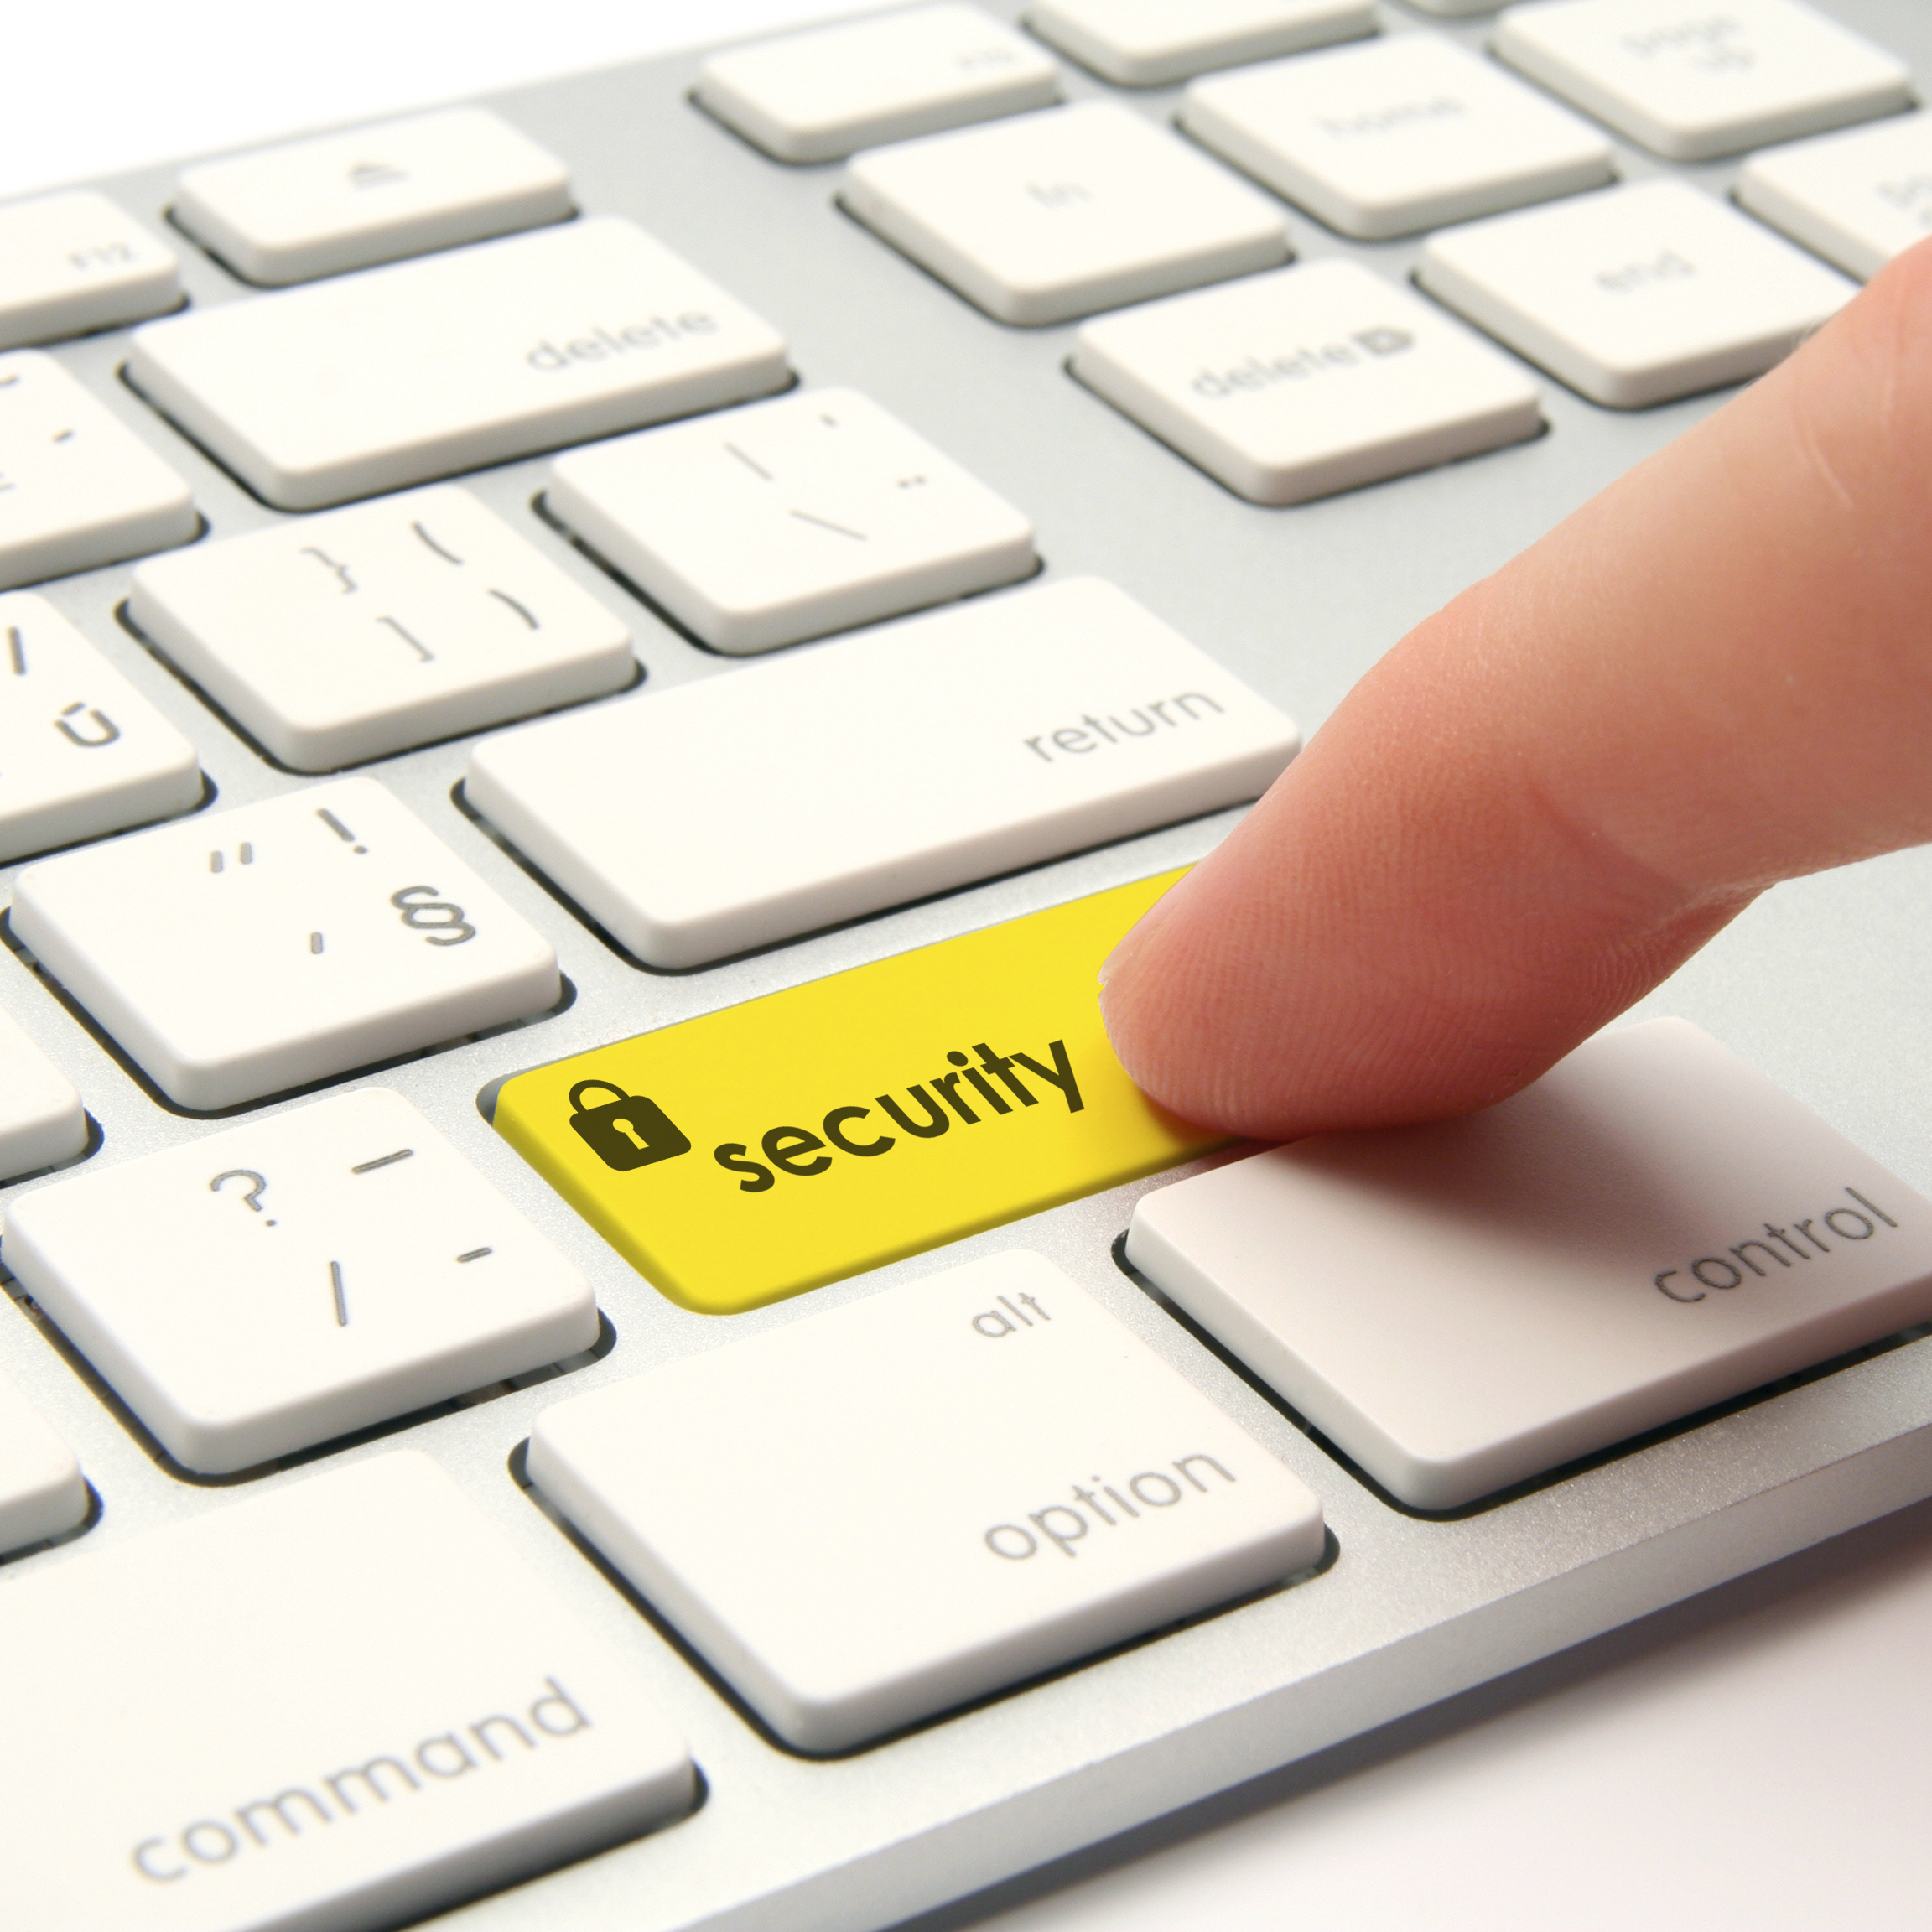 Keyboard with security key